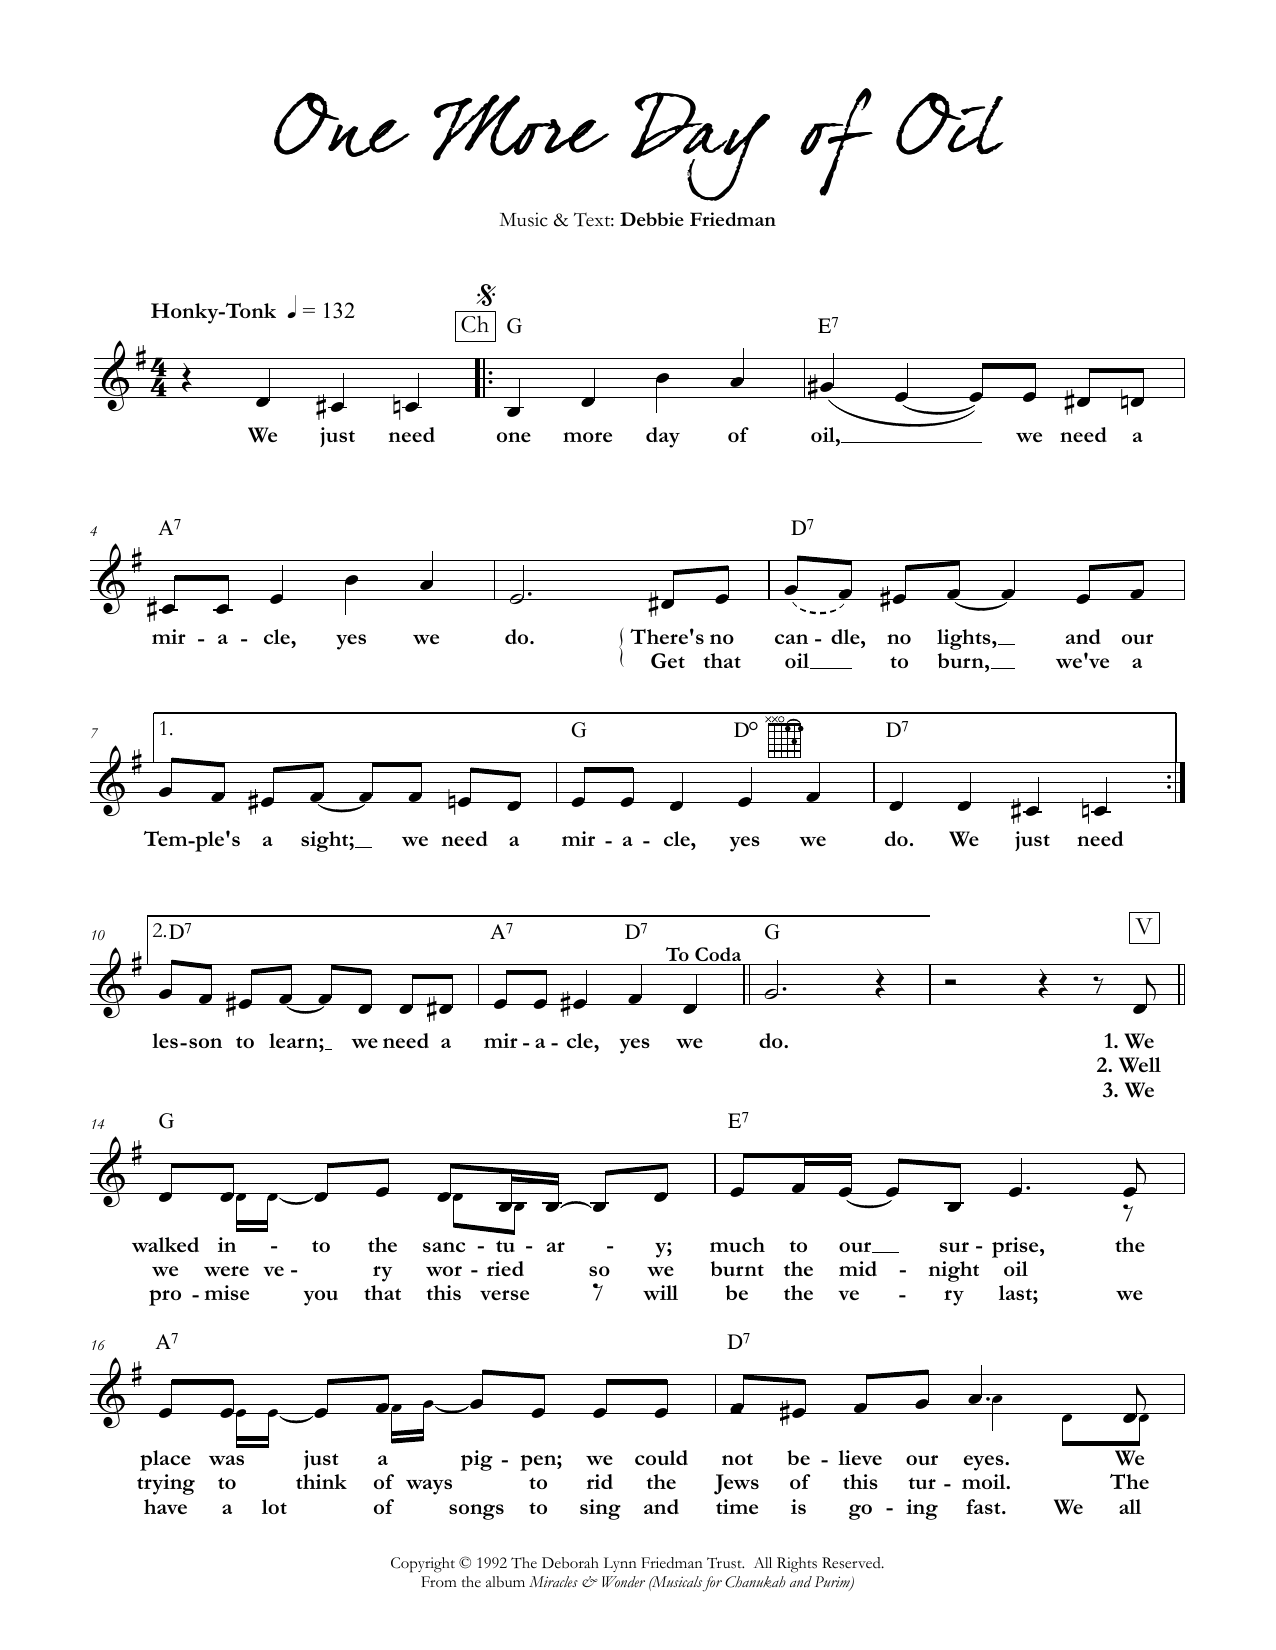 One More Day of Oil Sheet Music